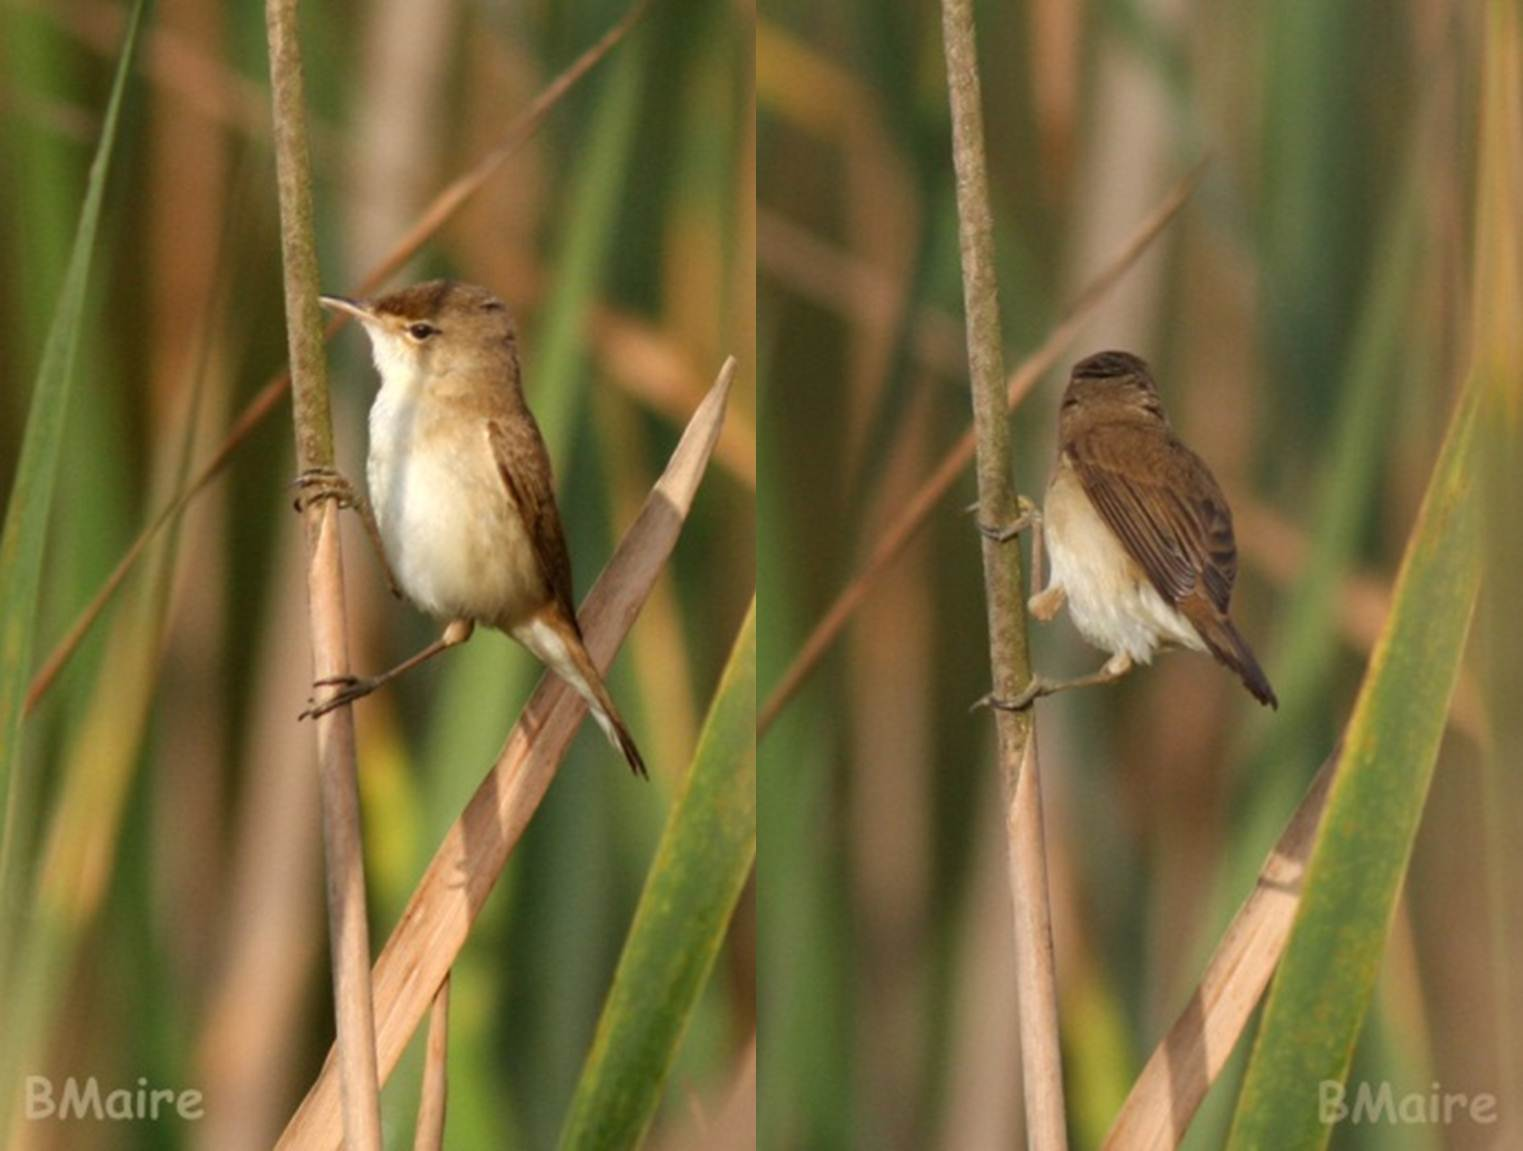 African Reed Warbler / Rousserolle africaine (Acrocephalus baeticatus ambiguus), photographed in northern Morocco in March 2011 (Benoît Maire).